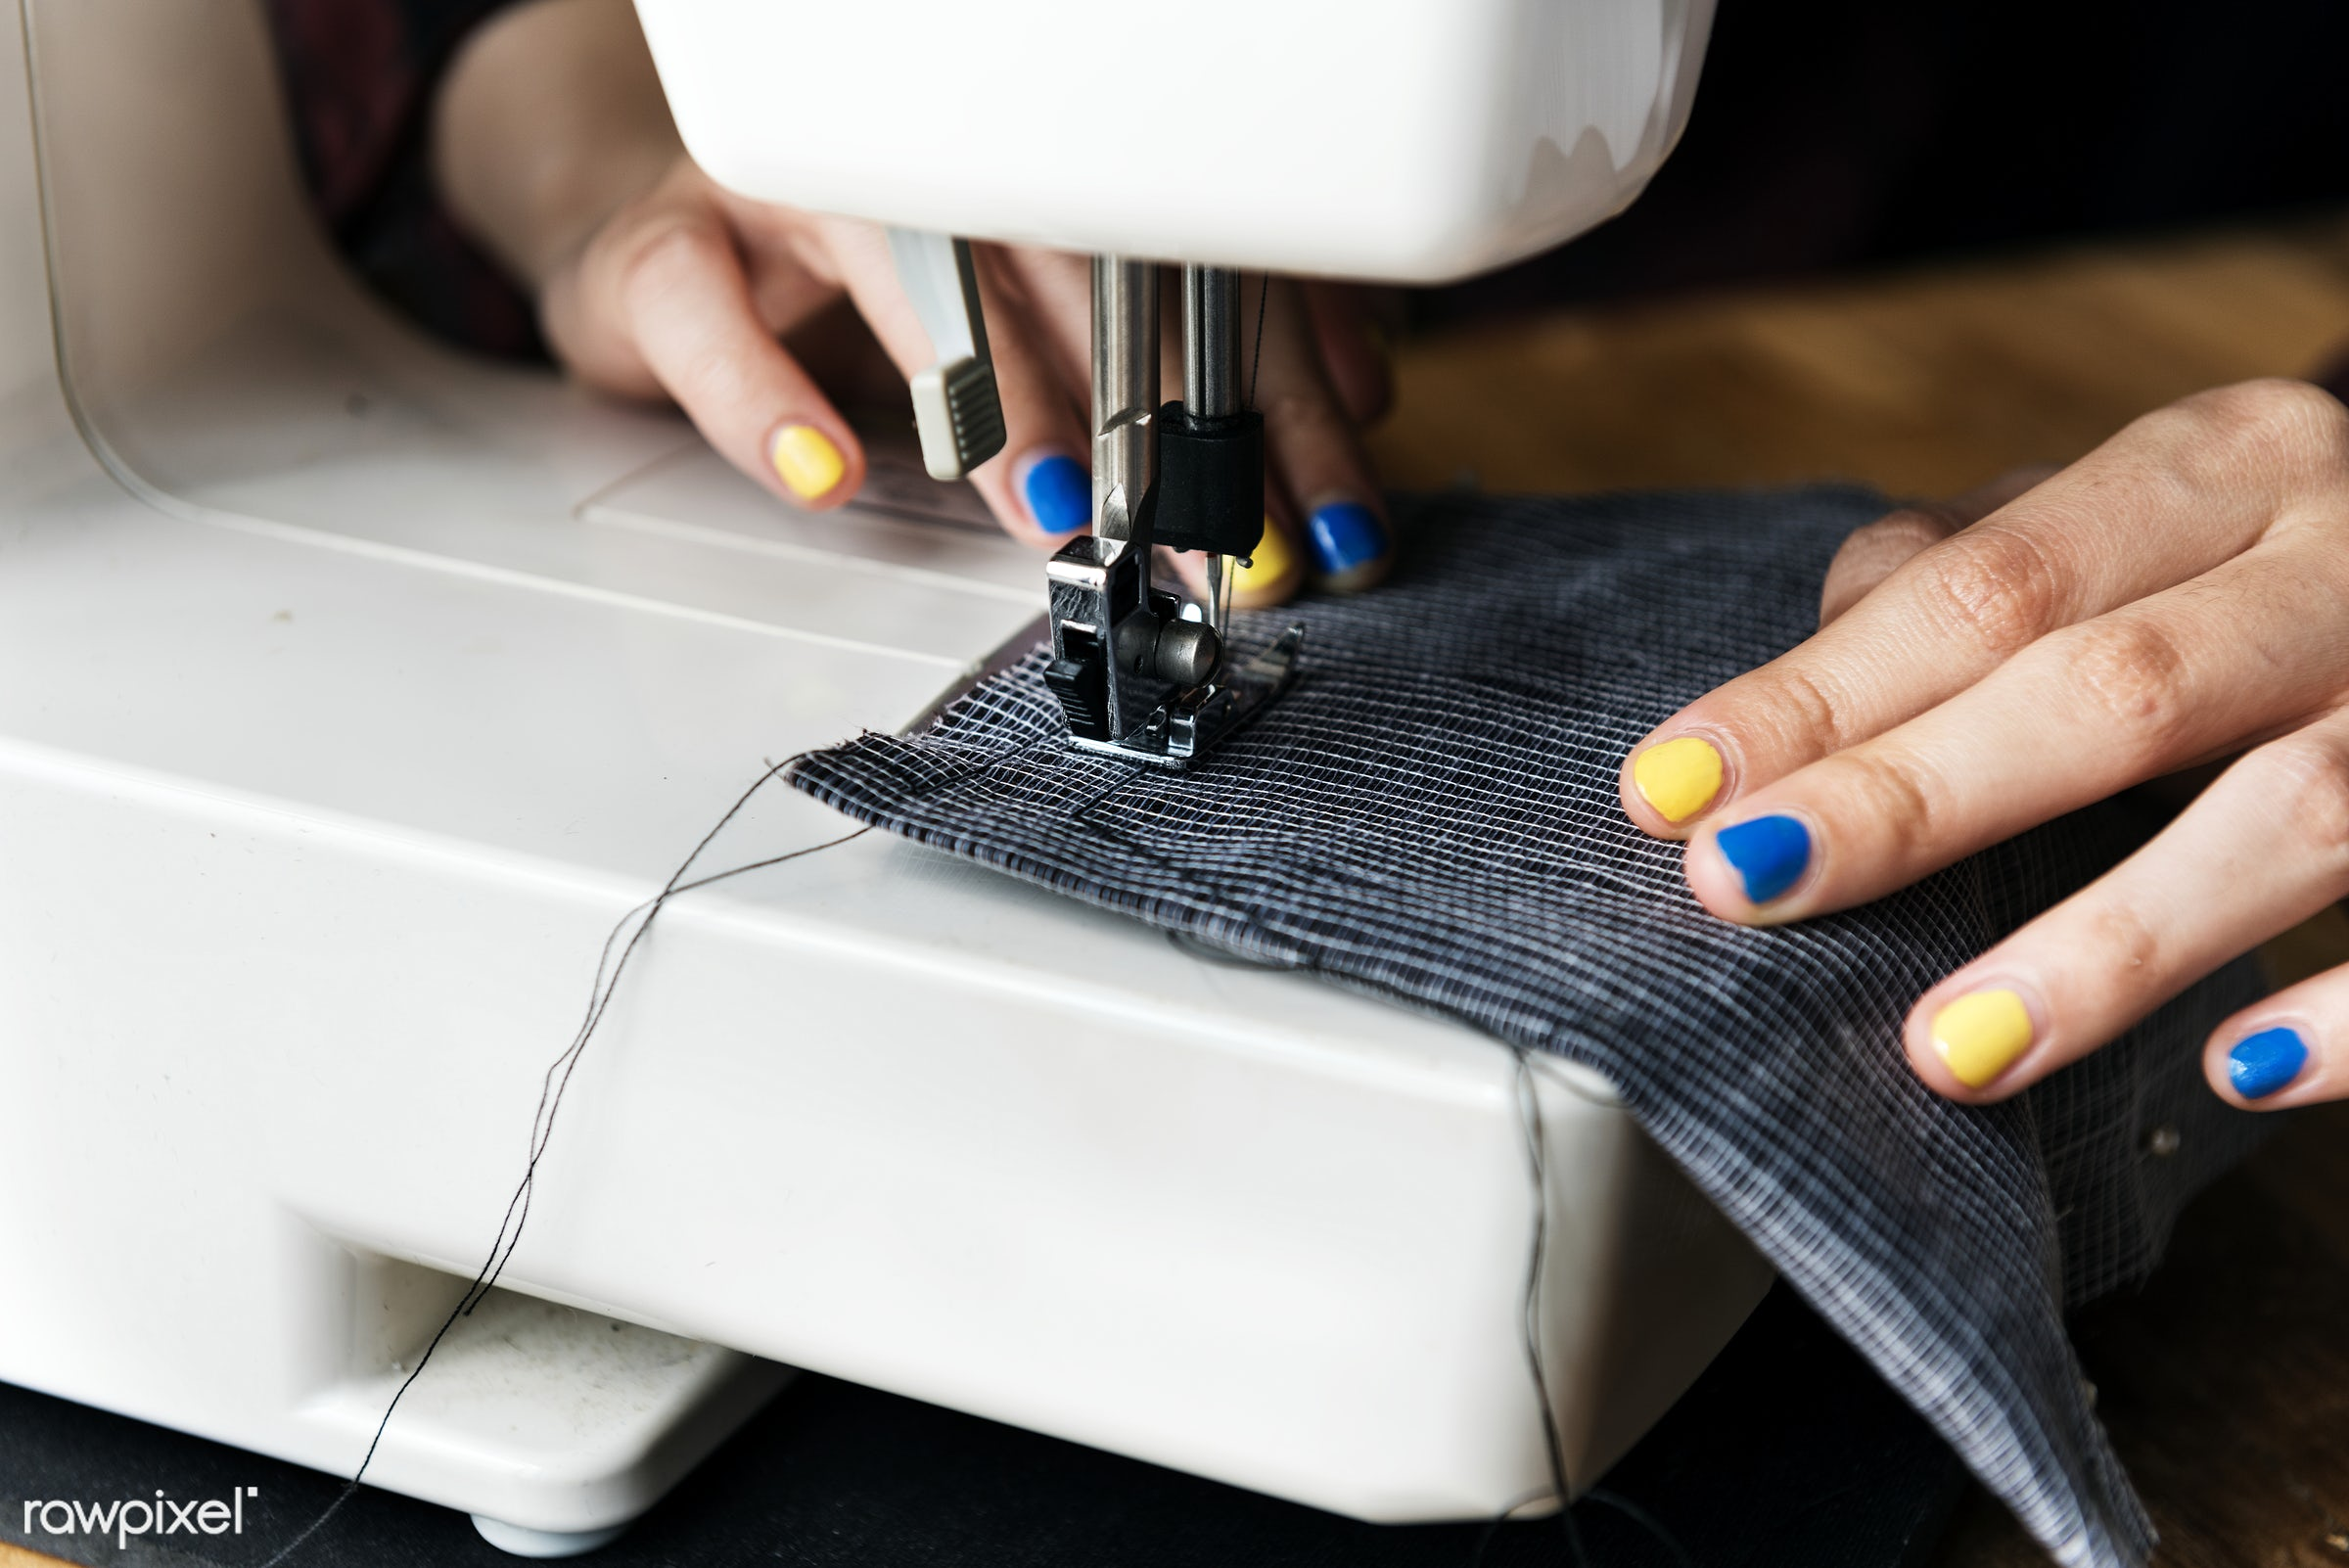 Fashion designer using a sewing machine - trends, sew, fashion, detail, craft, clothing, garment, fashion studio, profession...